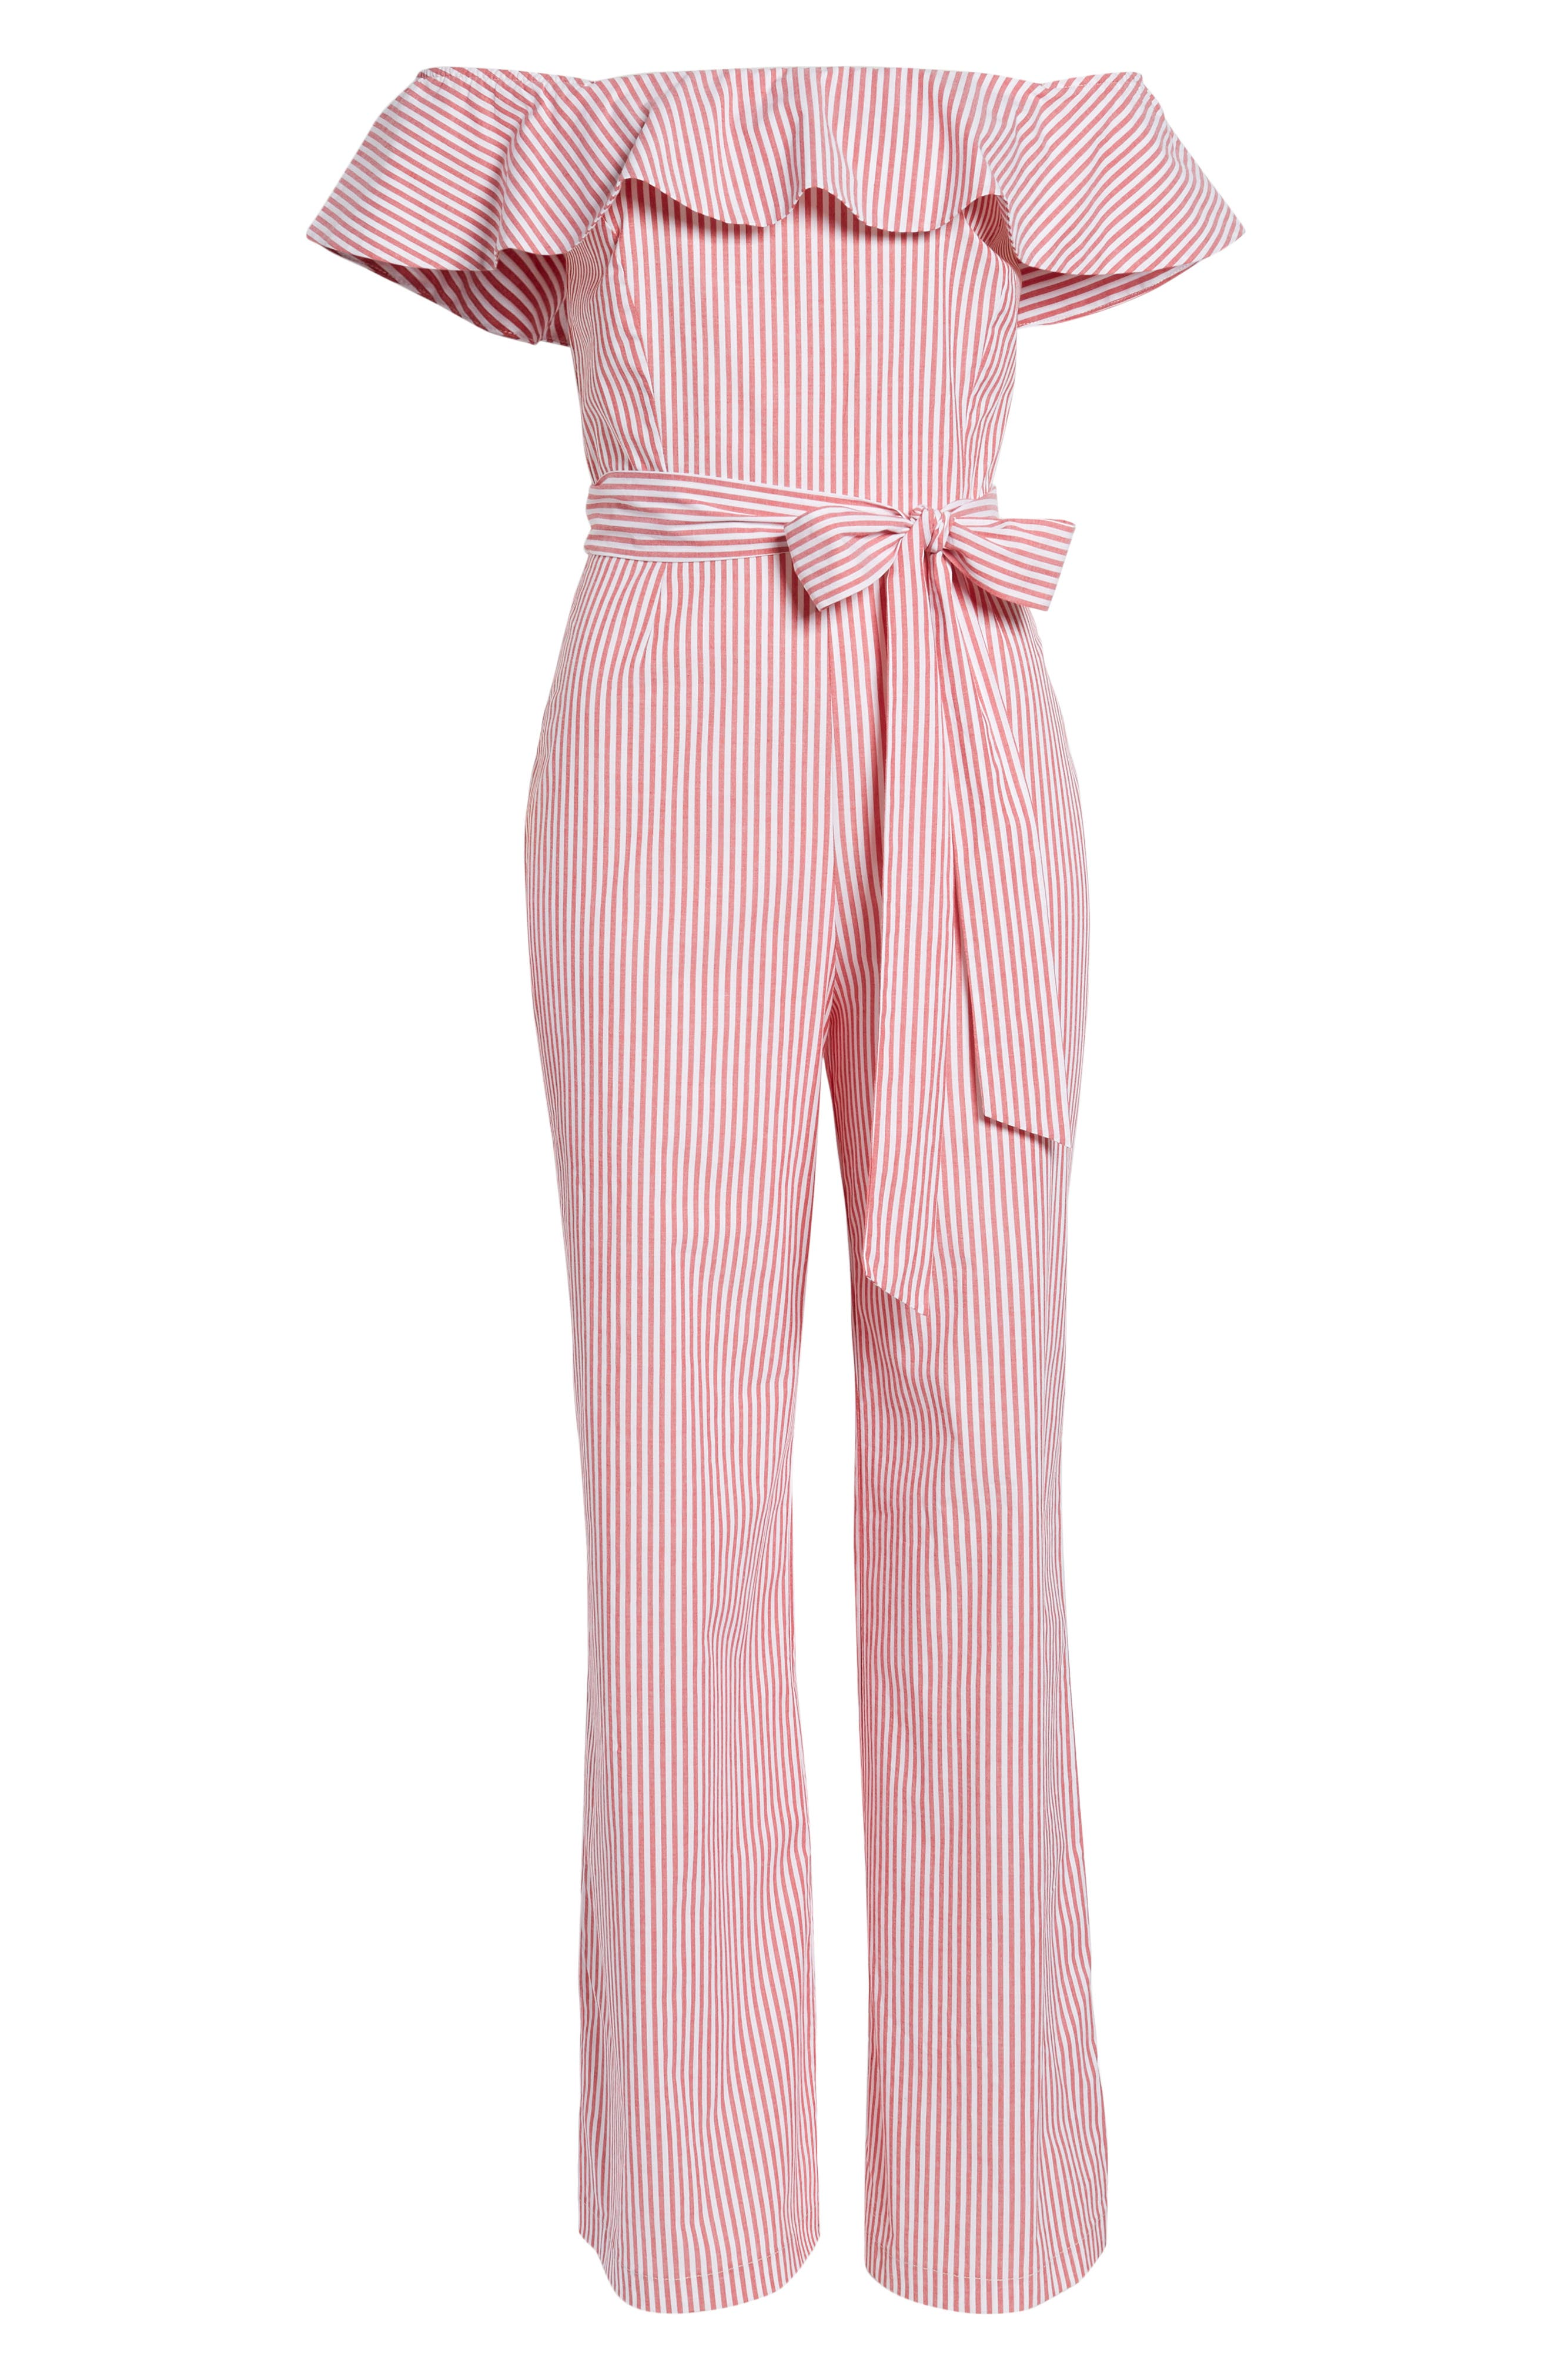 Grenoble Off The Shoulder Jumpsuit,                             Alternate thumbnail 7, color,                             Red Stripe